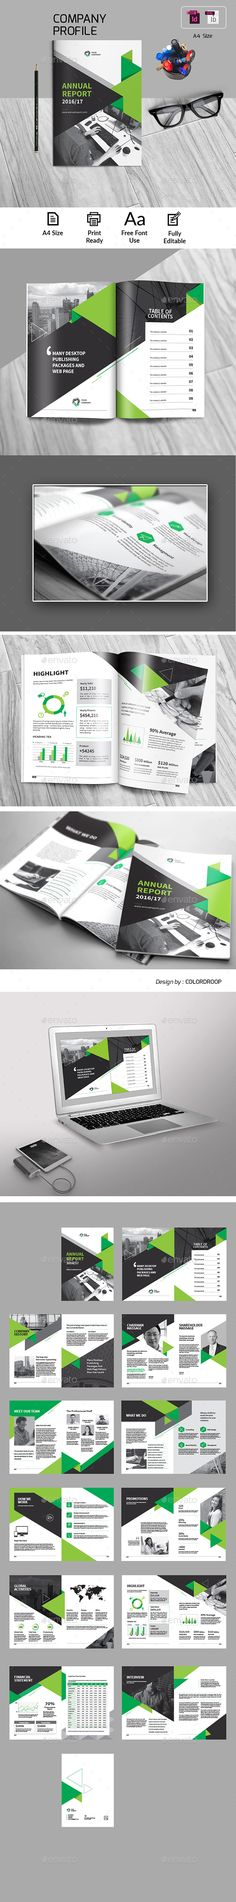 #Annual Report - #Corporate #Brochures Download here:  https://graphicriver.net/item/annual-report/19764949?ref=alena994